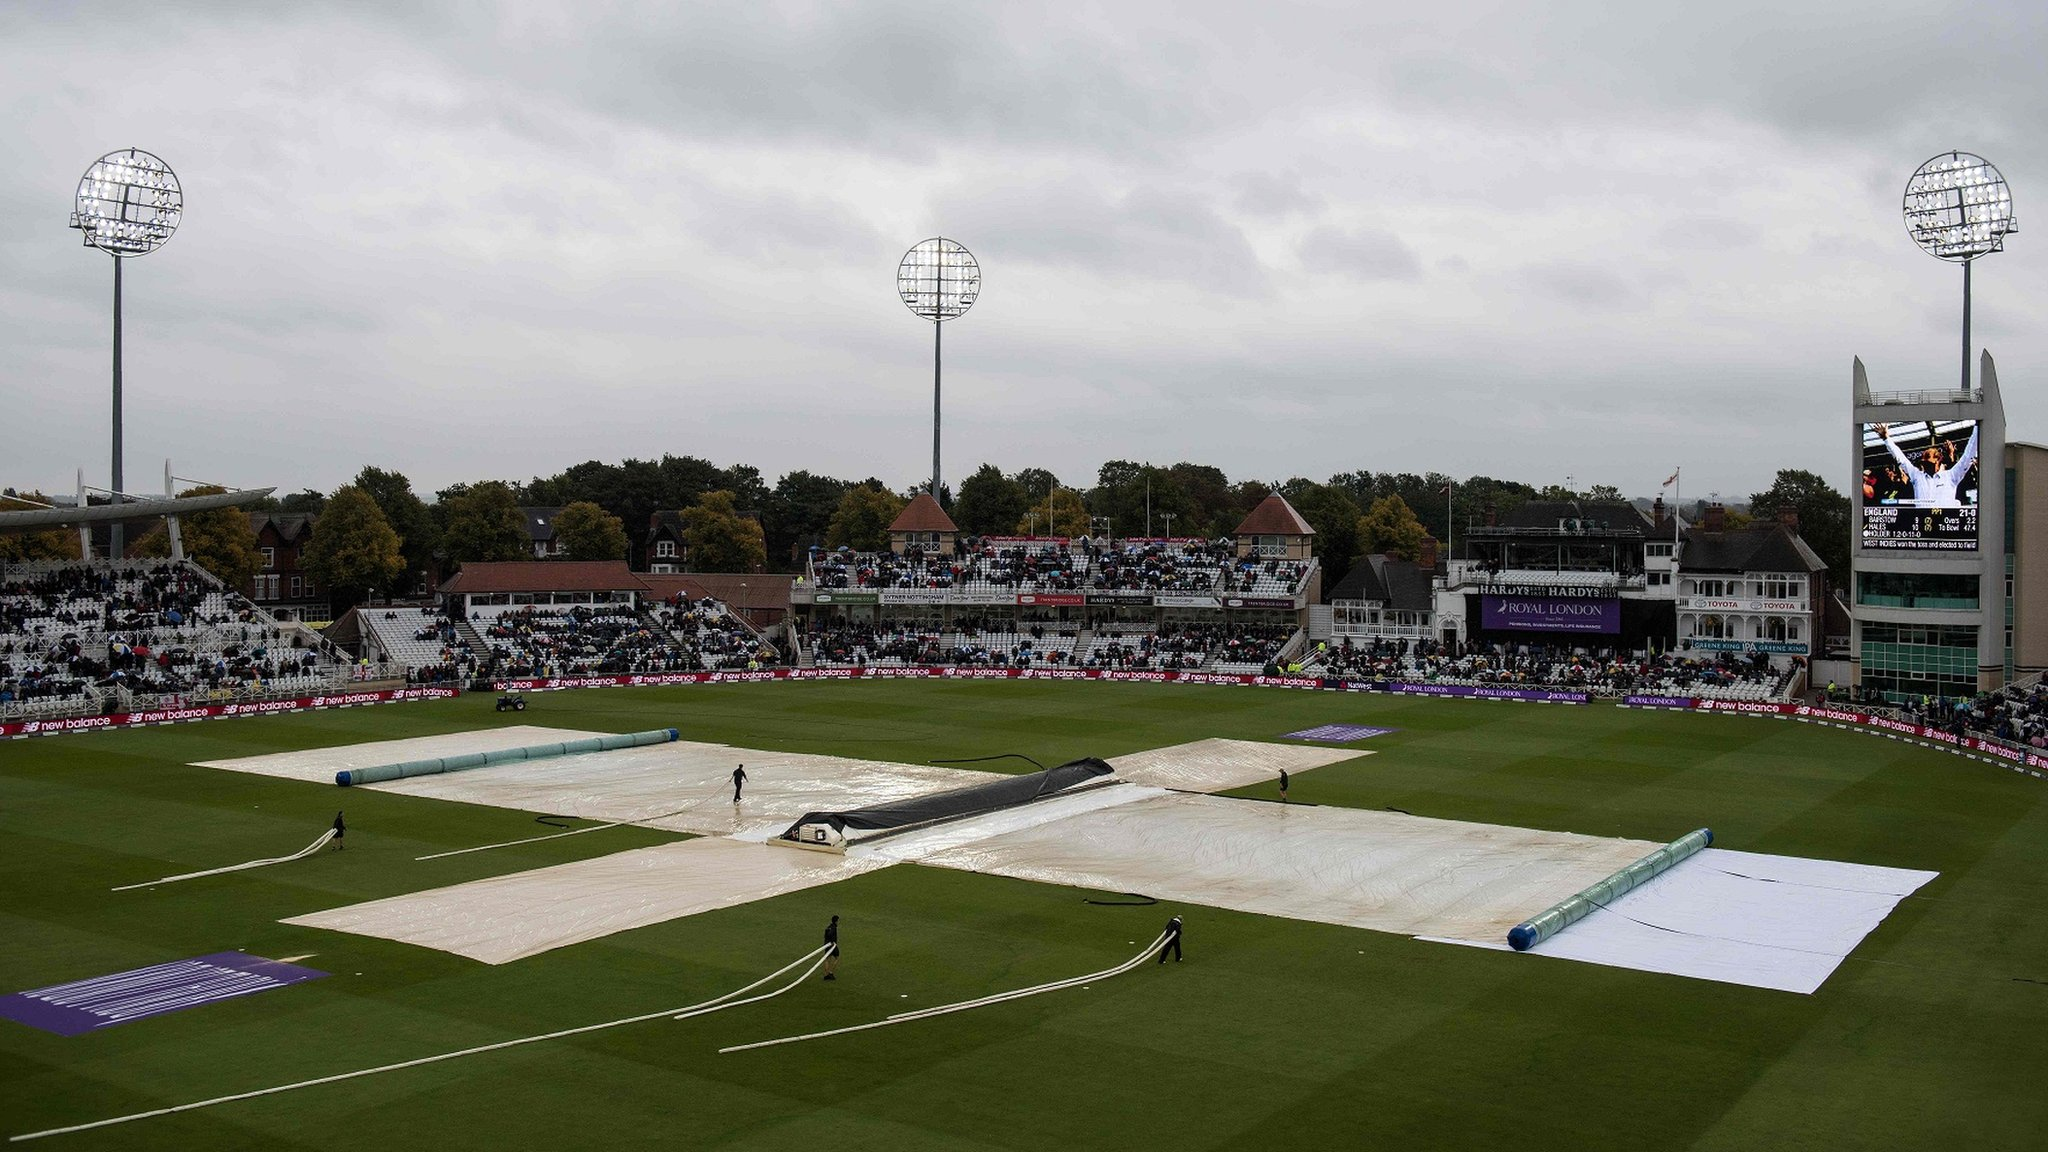 England v West Indies: Second ODI washed out at Trent Bridge